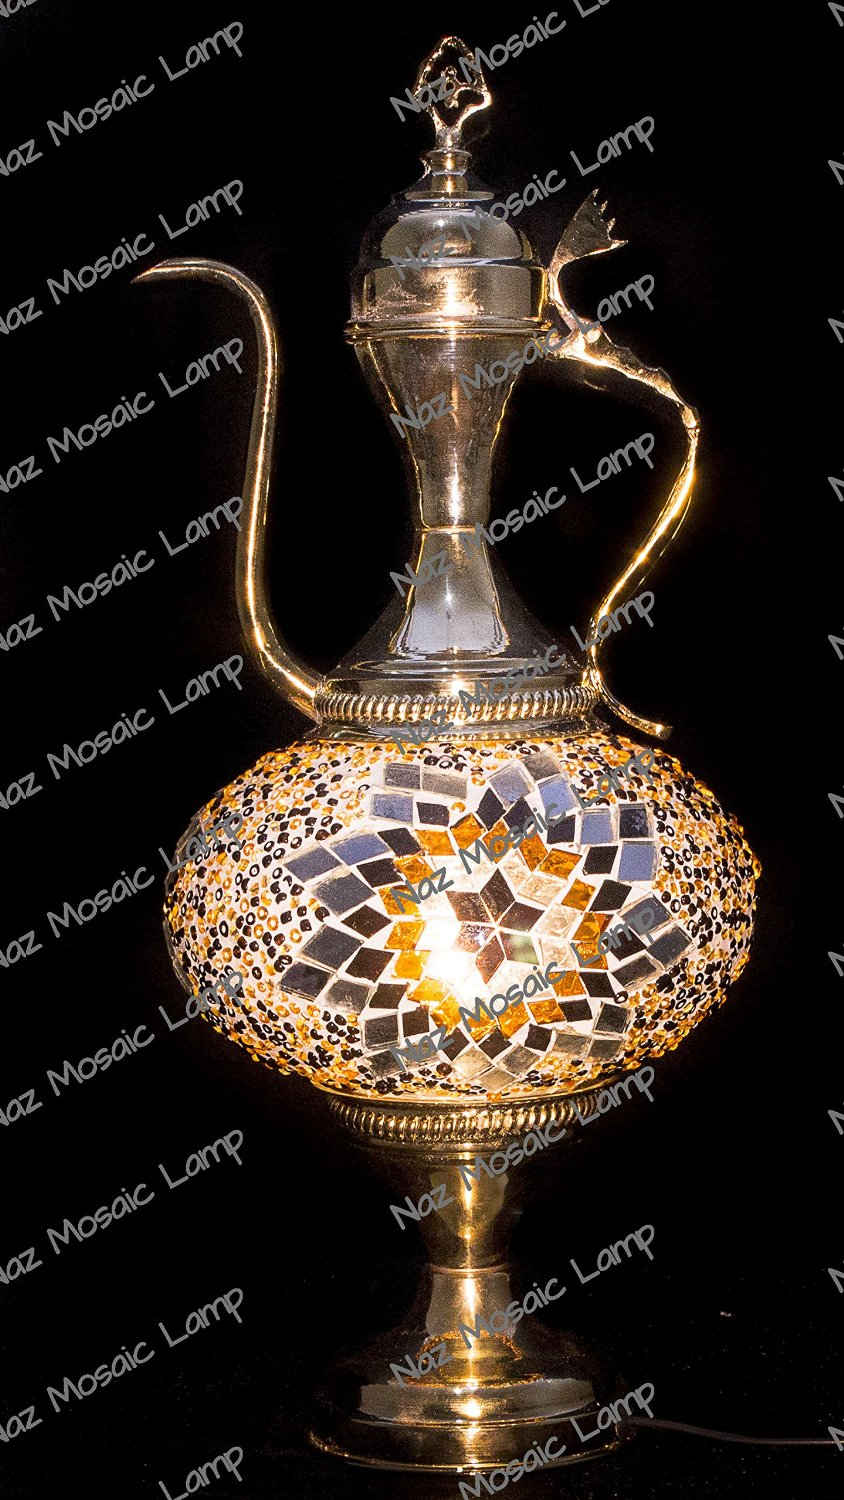 Mosaic Table Lamp,Lamp Shade,Turkish Lamp,Moroccan Lamp,Pitcher Lamp,Ewer Lamp